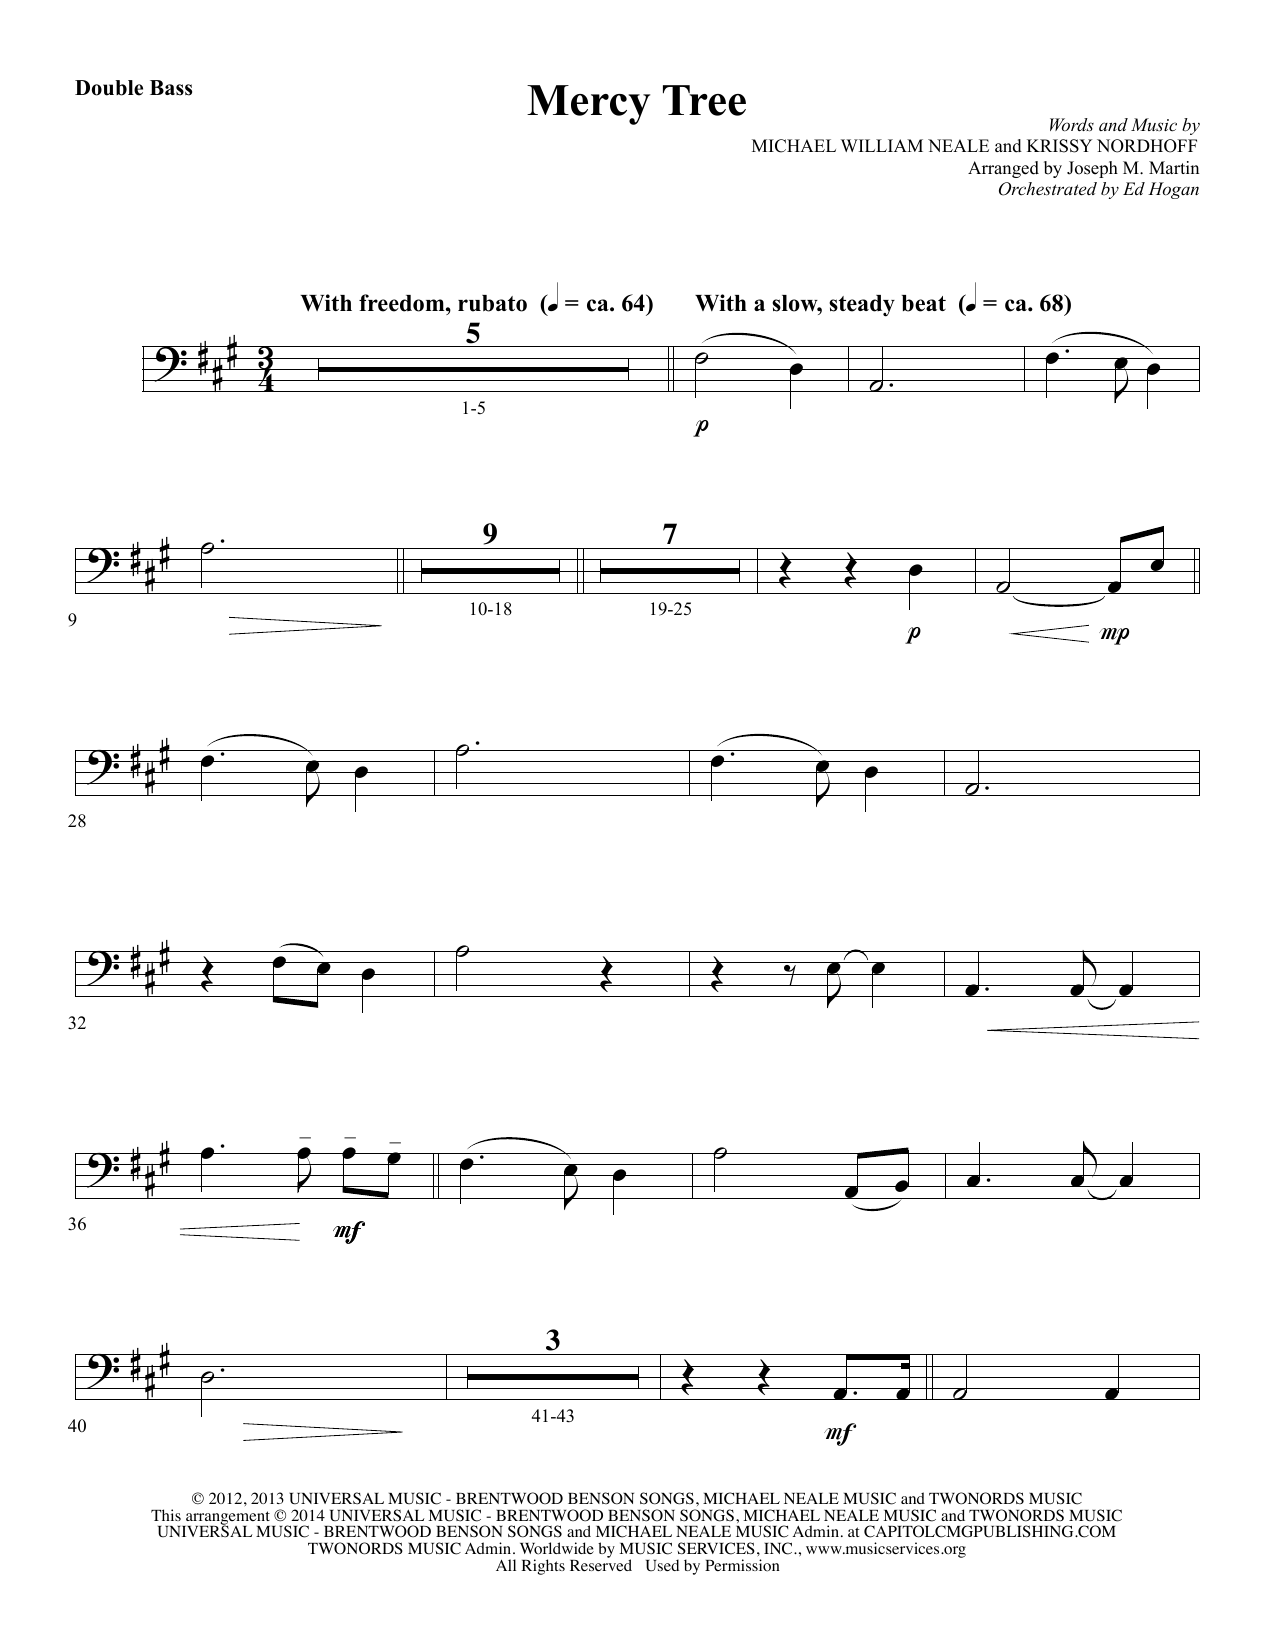 Mercy Tree - Double Bass Sheet Music